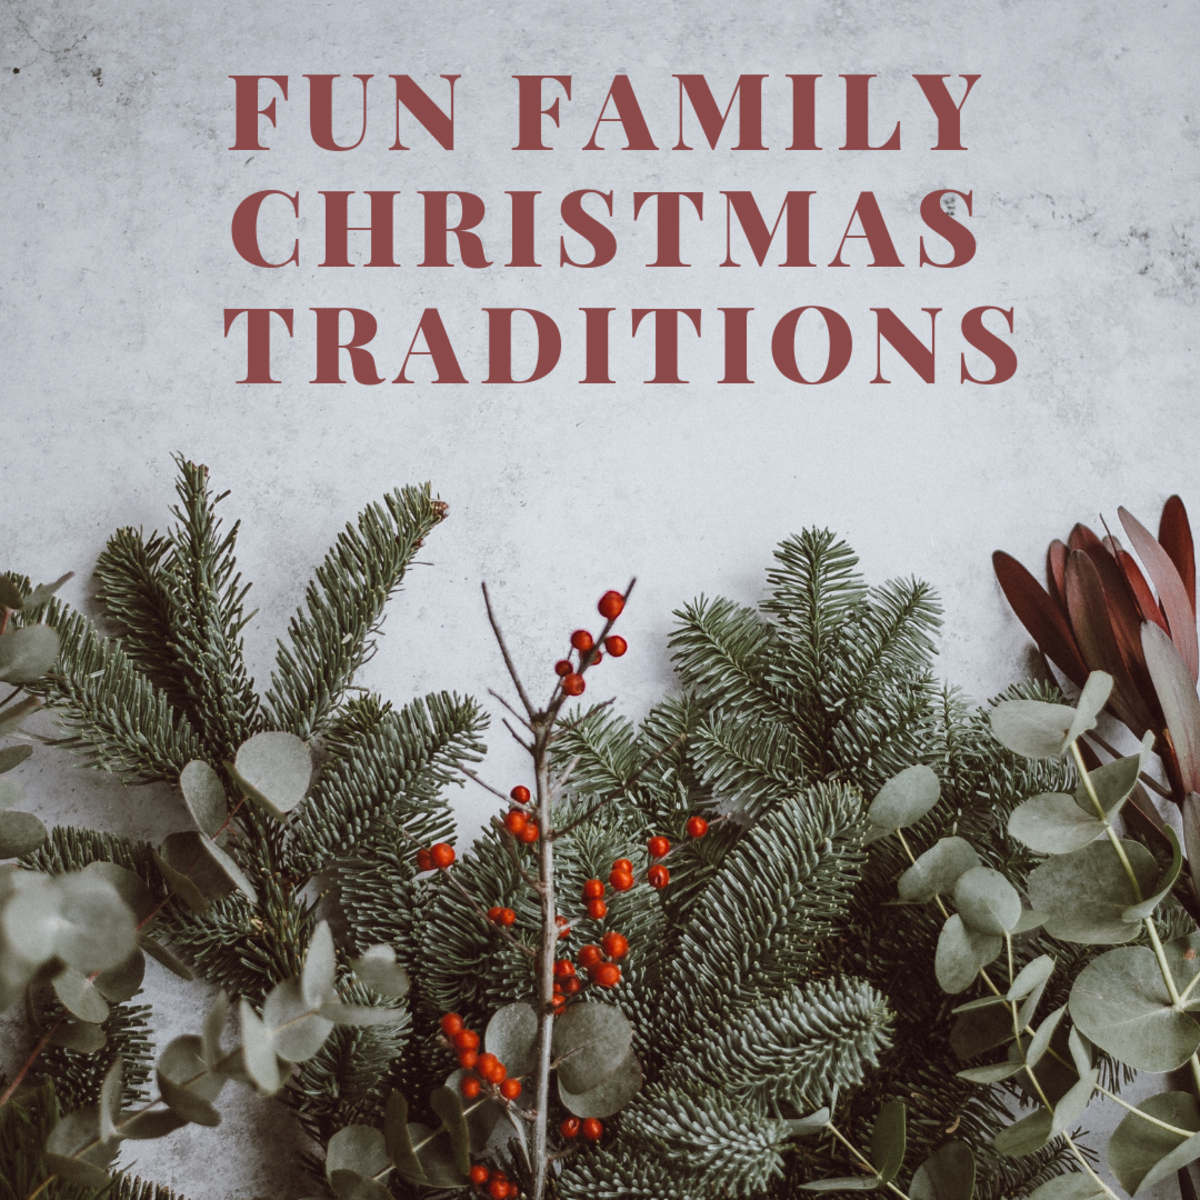 15 Religious and Secular Fun Family Christmas Traditions